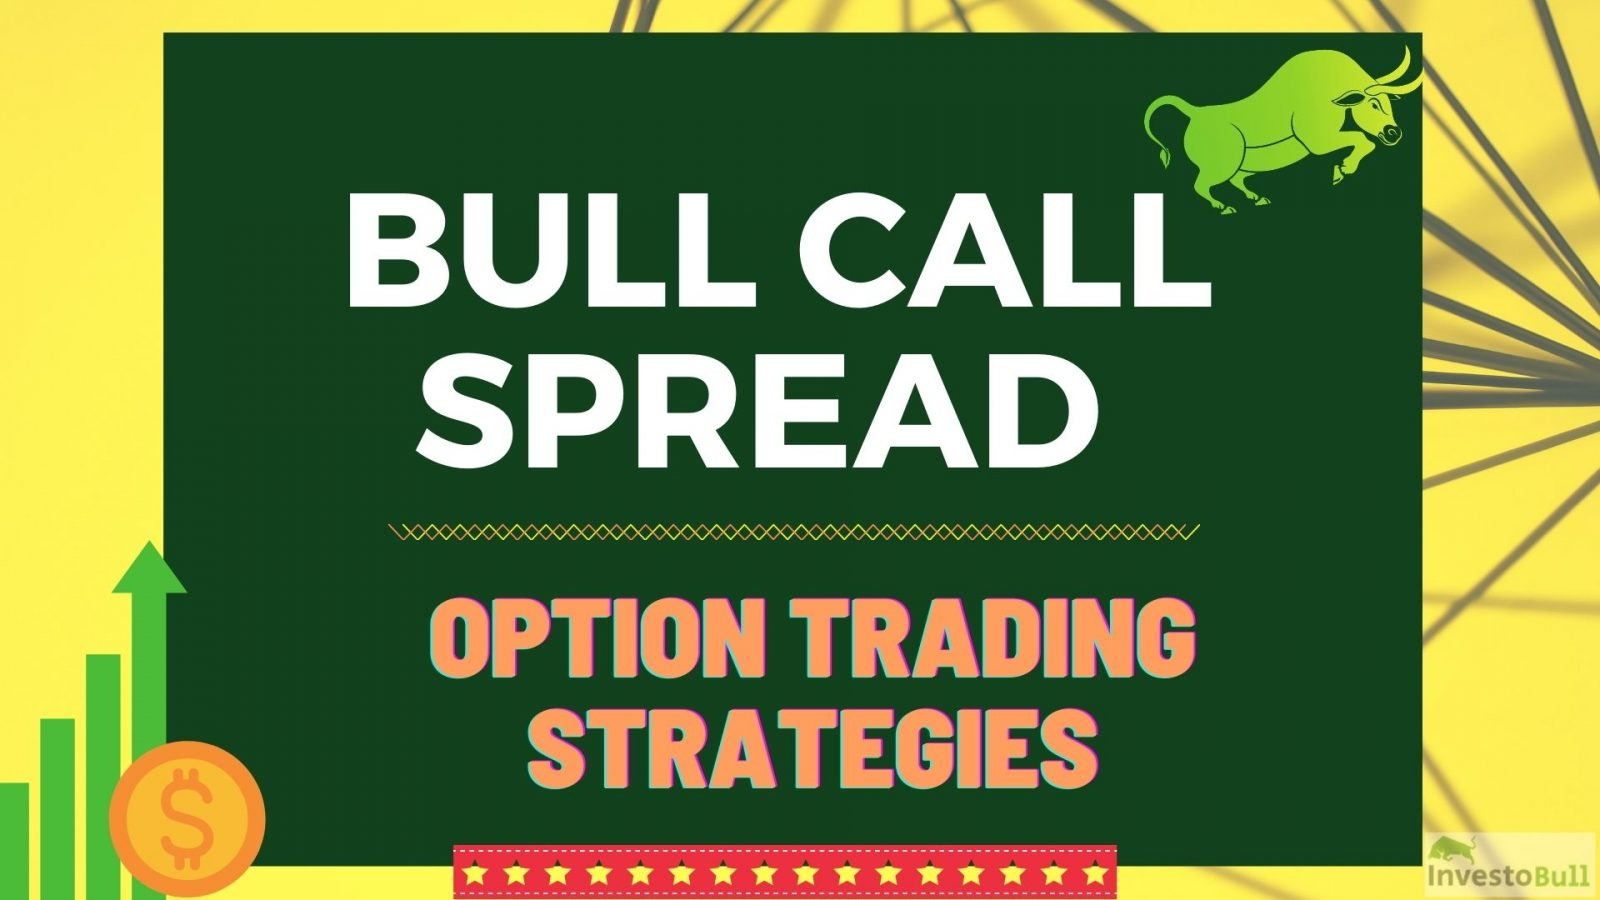 What is Bull Call Spread